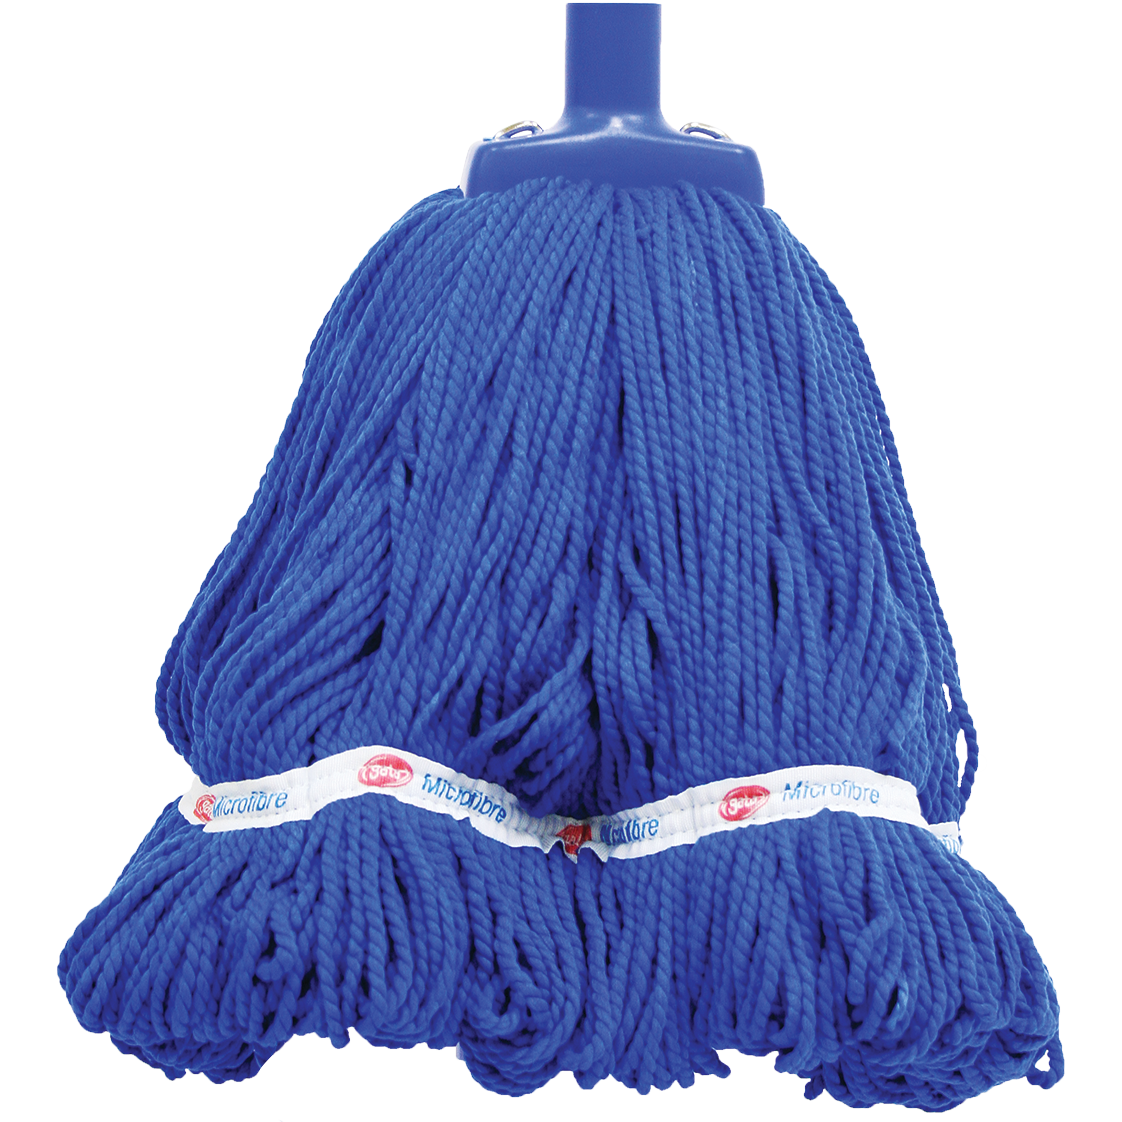 GALA MOP - MICROFIBRE Blue 400g - Sold by Single Unit in multiples of 1 Single Unit